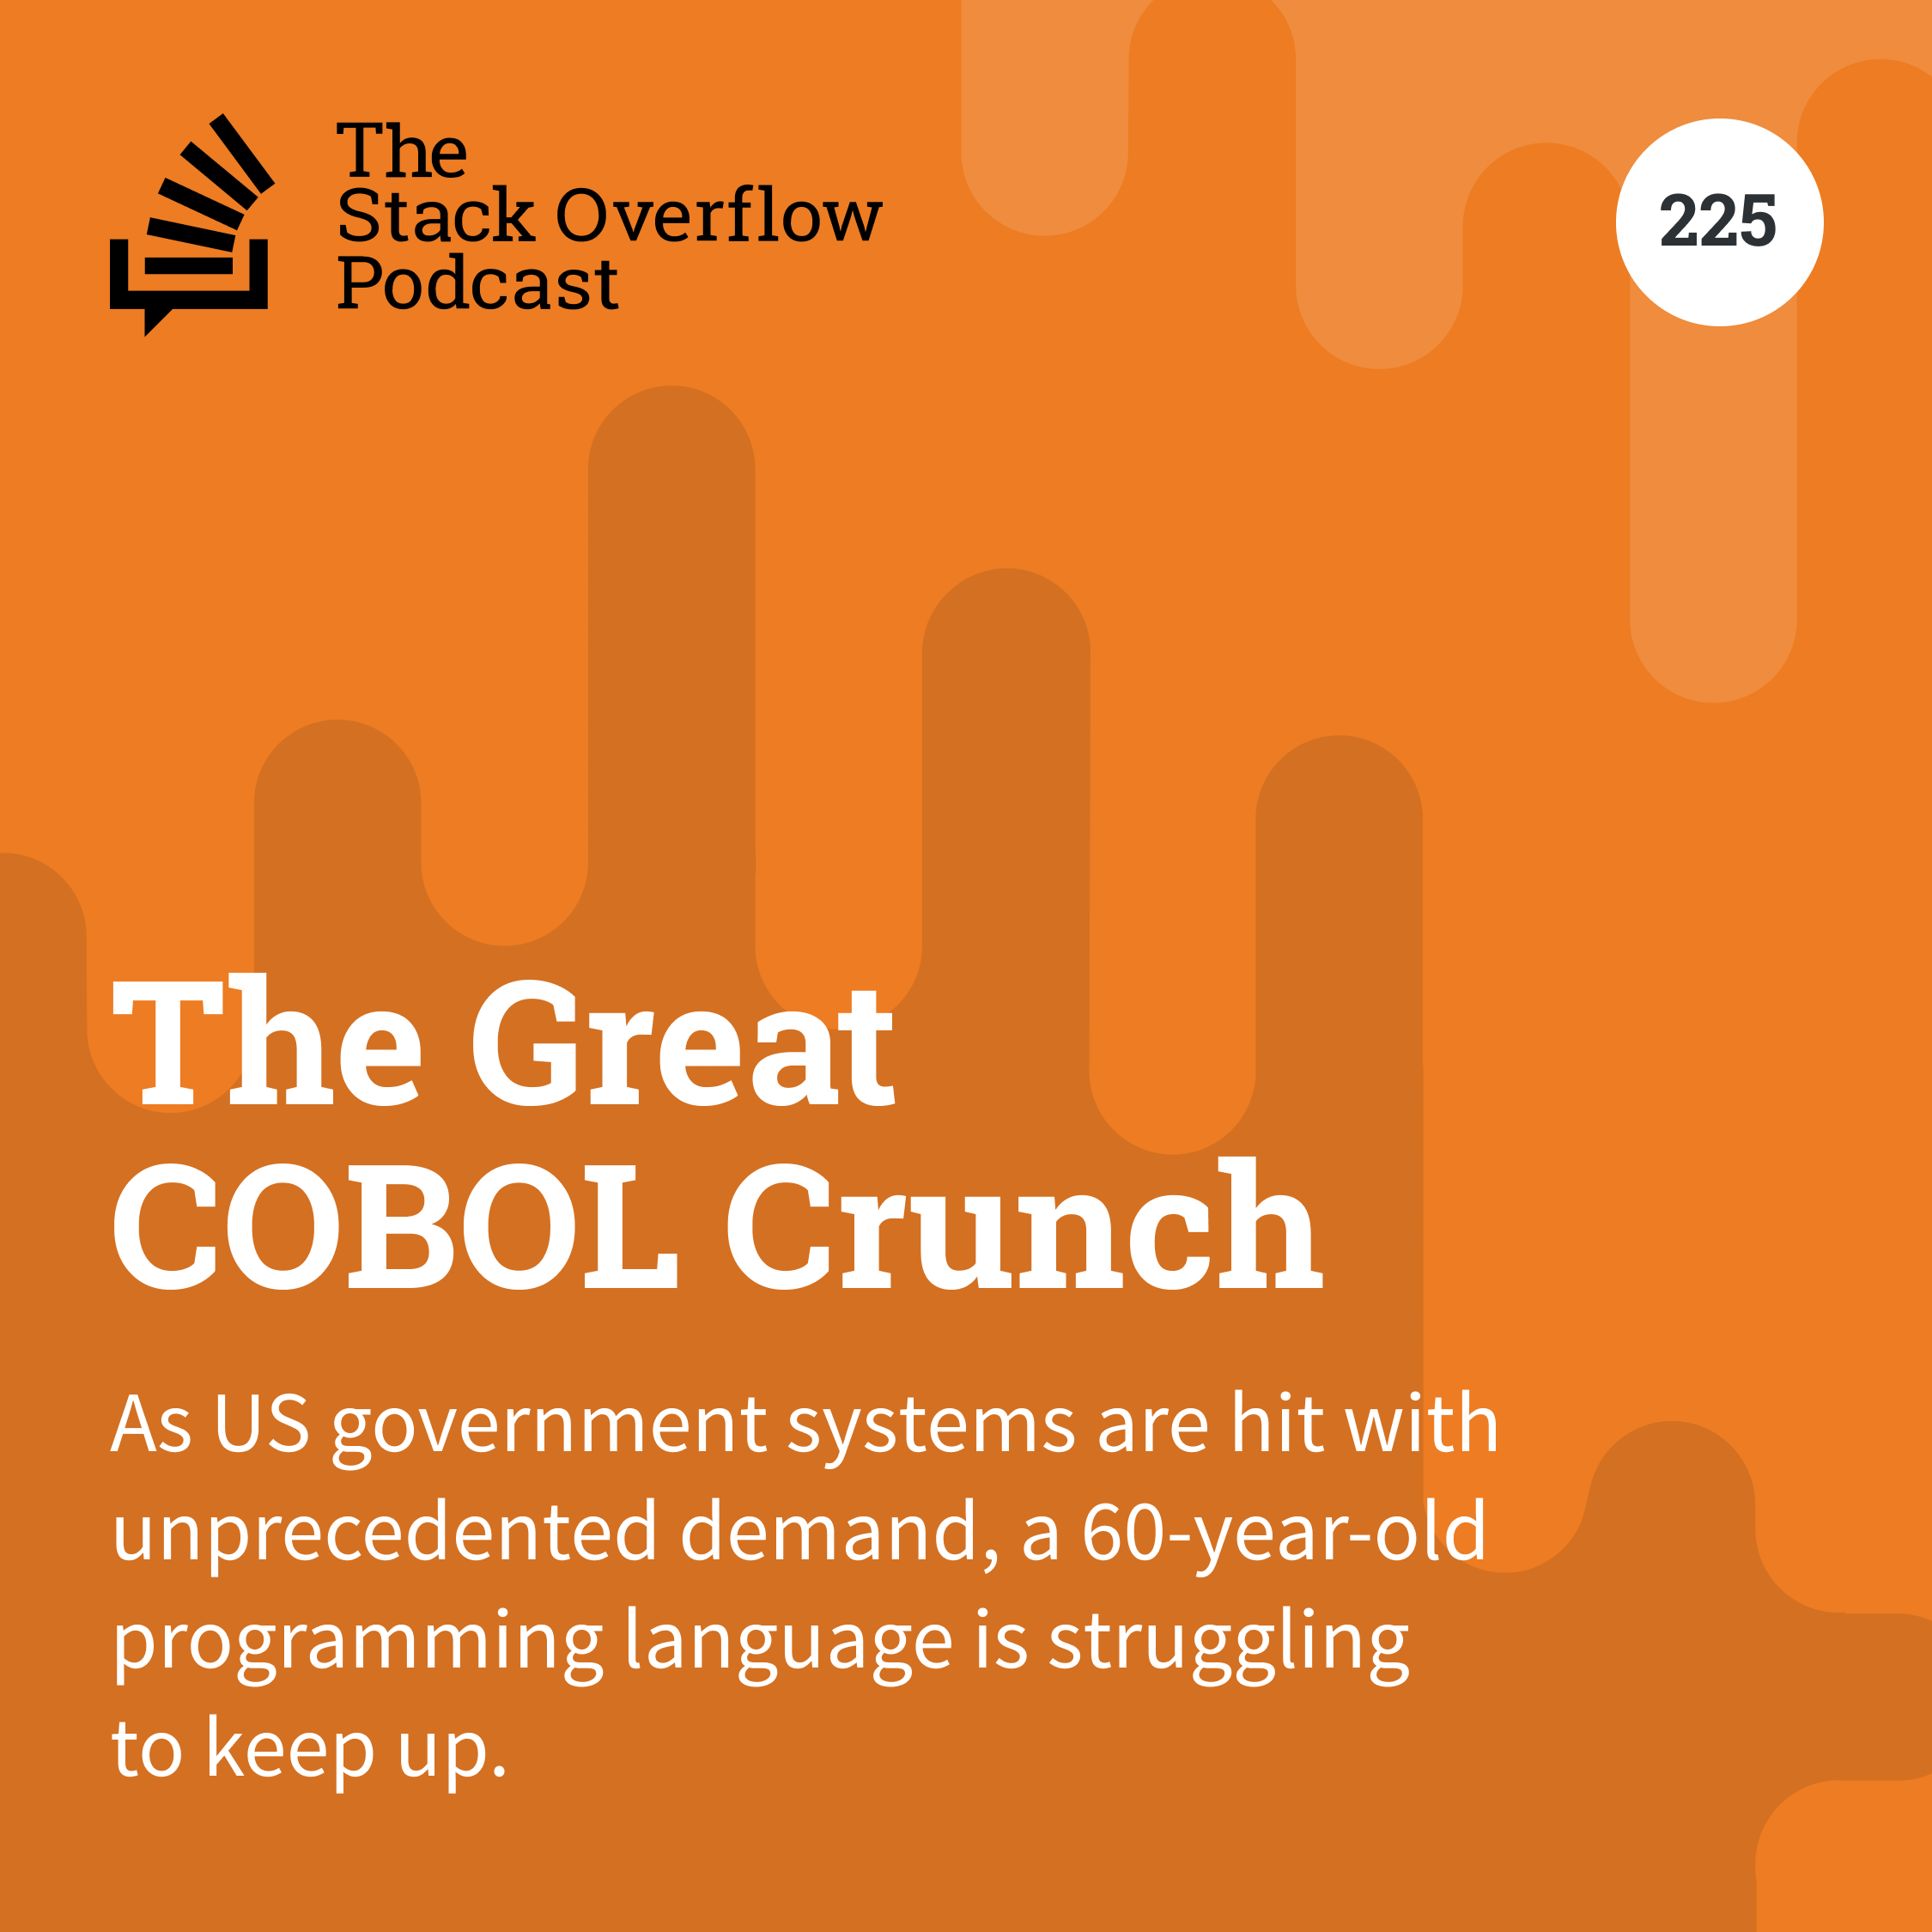 Podcast 225: The Great COBOL Crunch